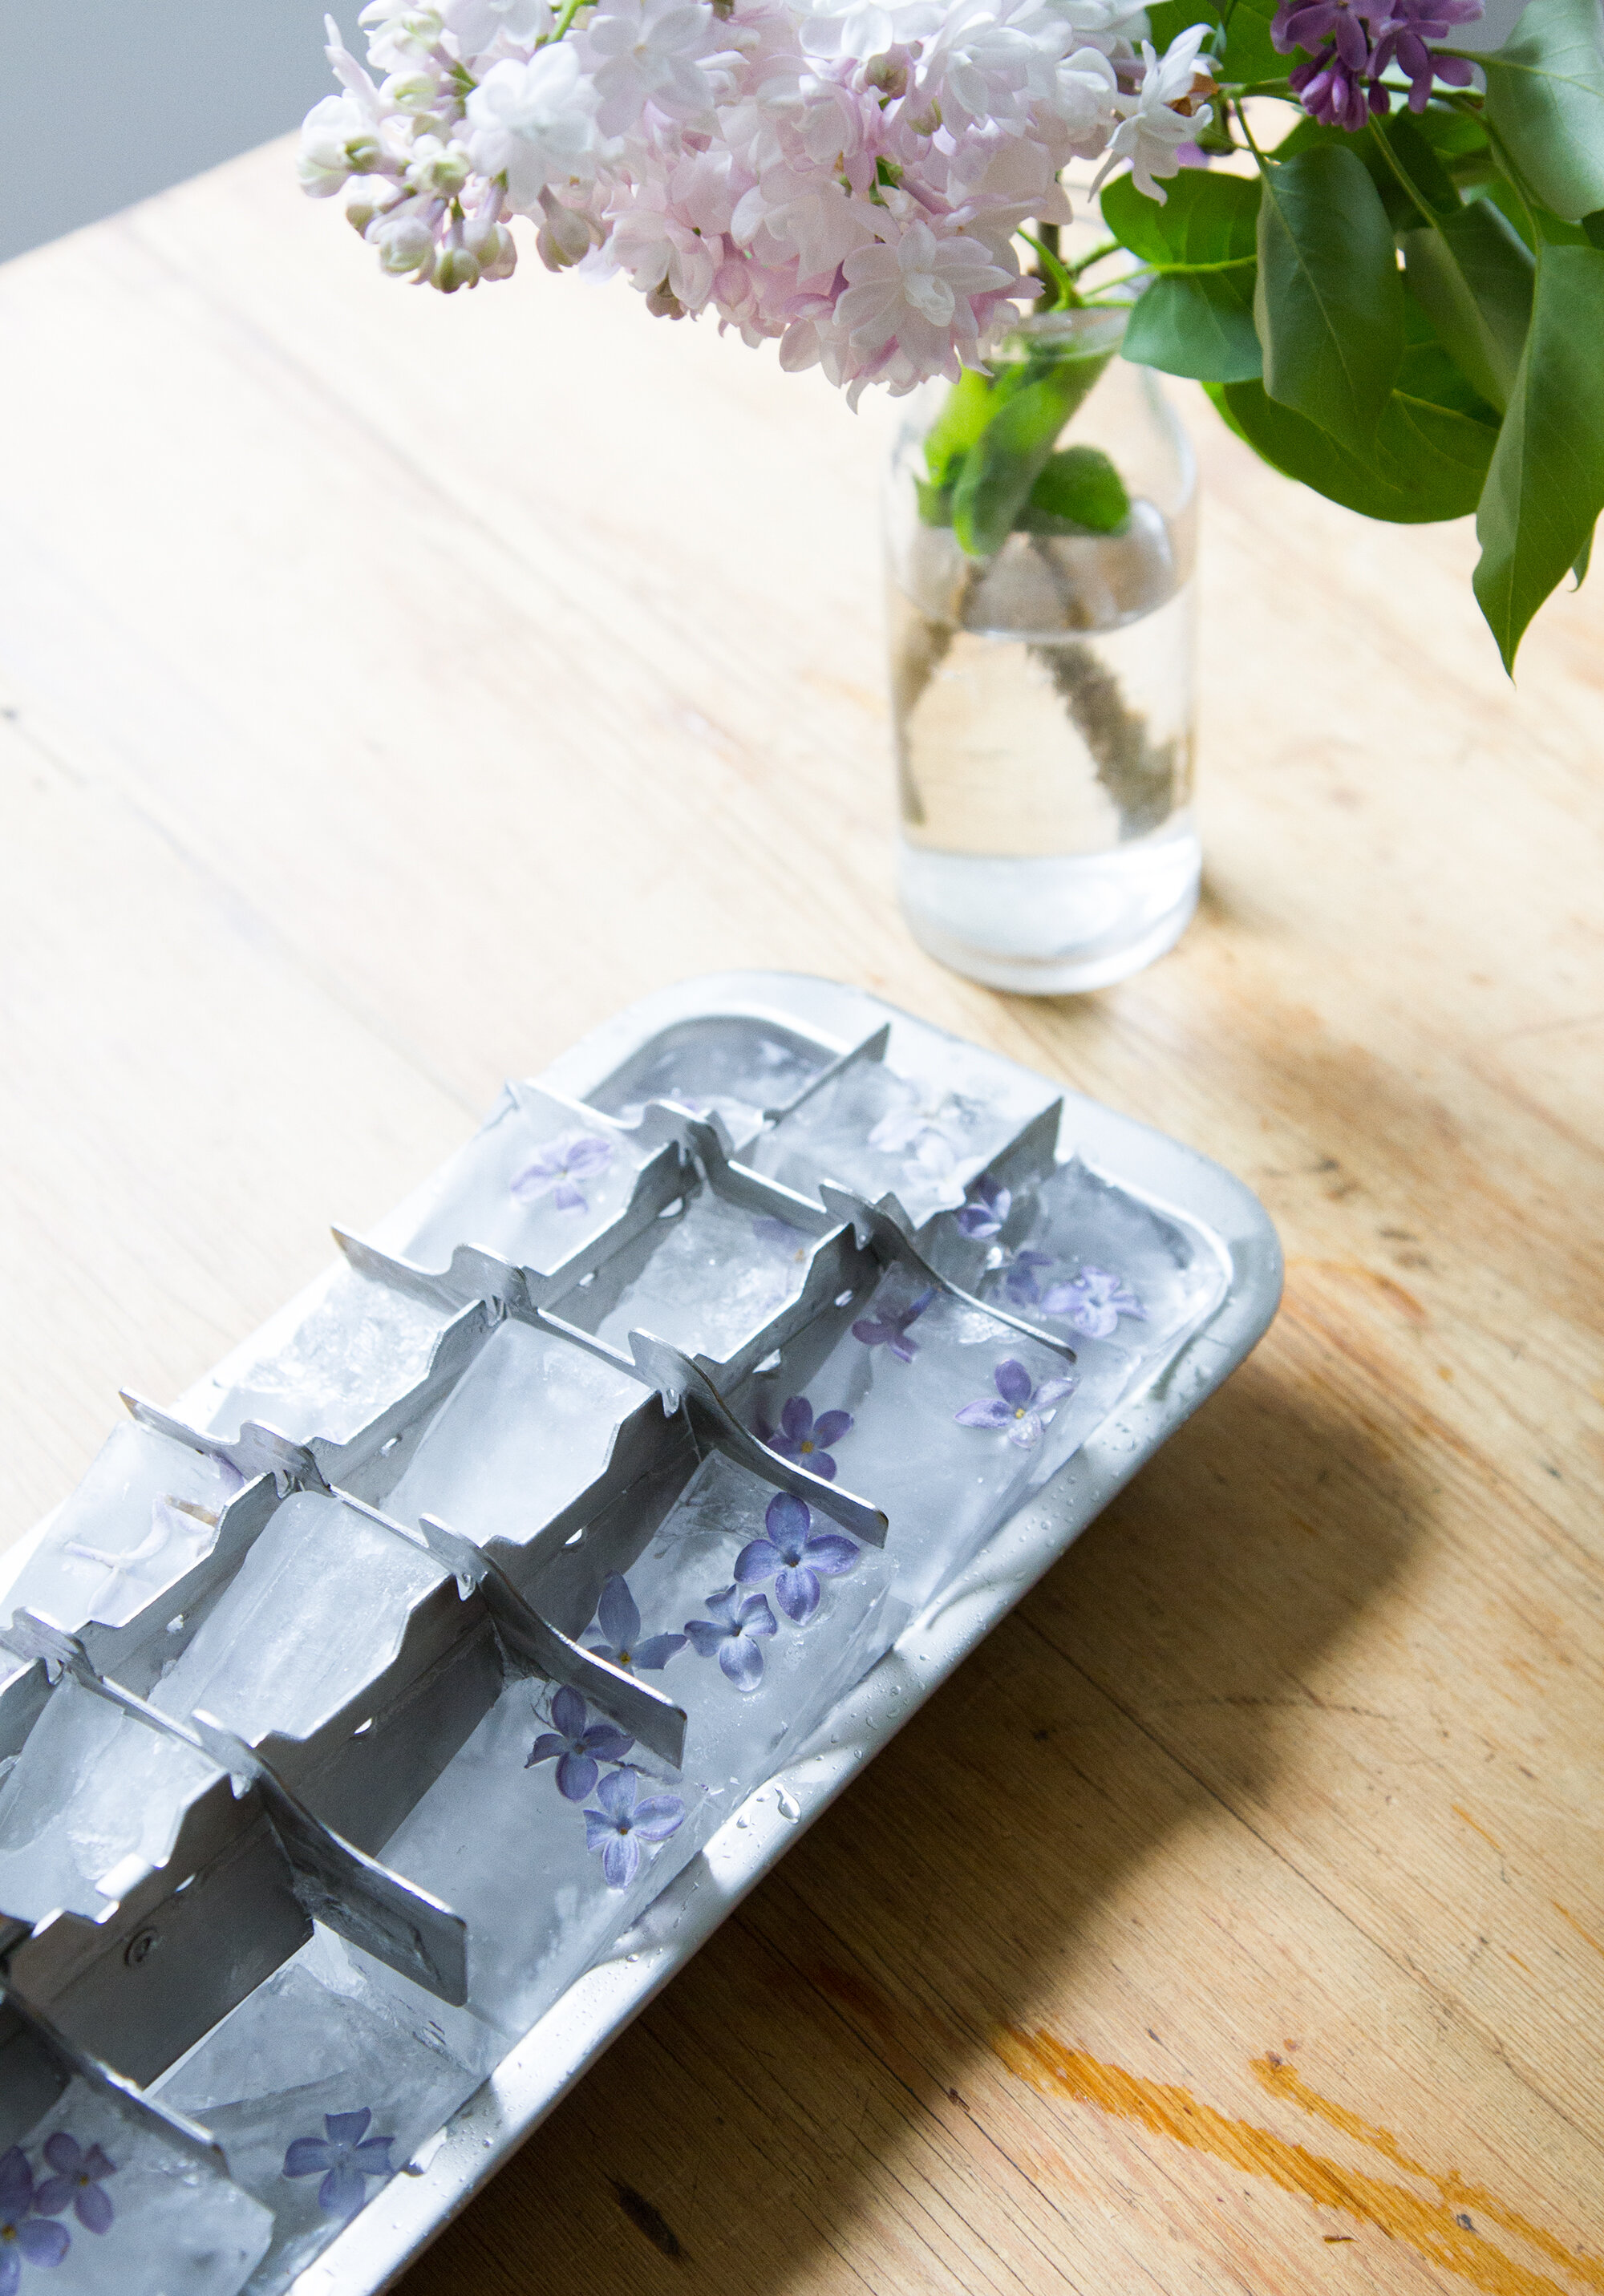 lilac ice cubes gone wrong | reading my tea leaves